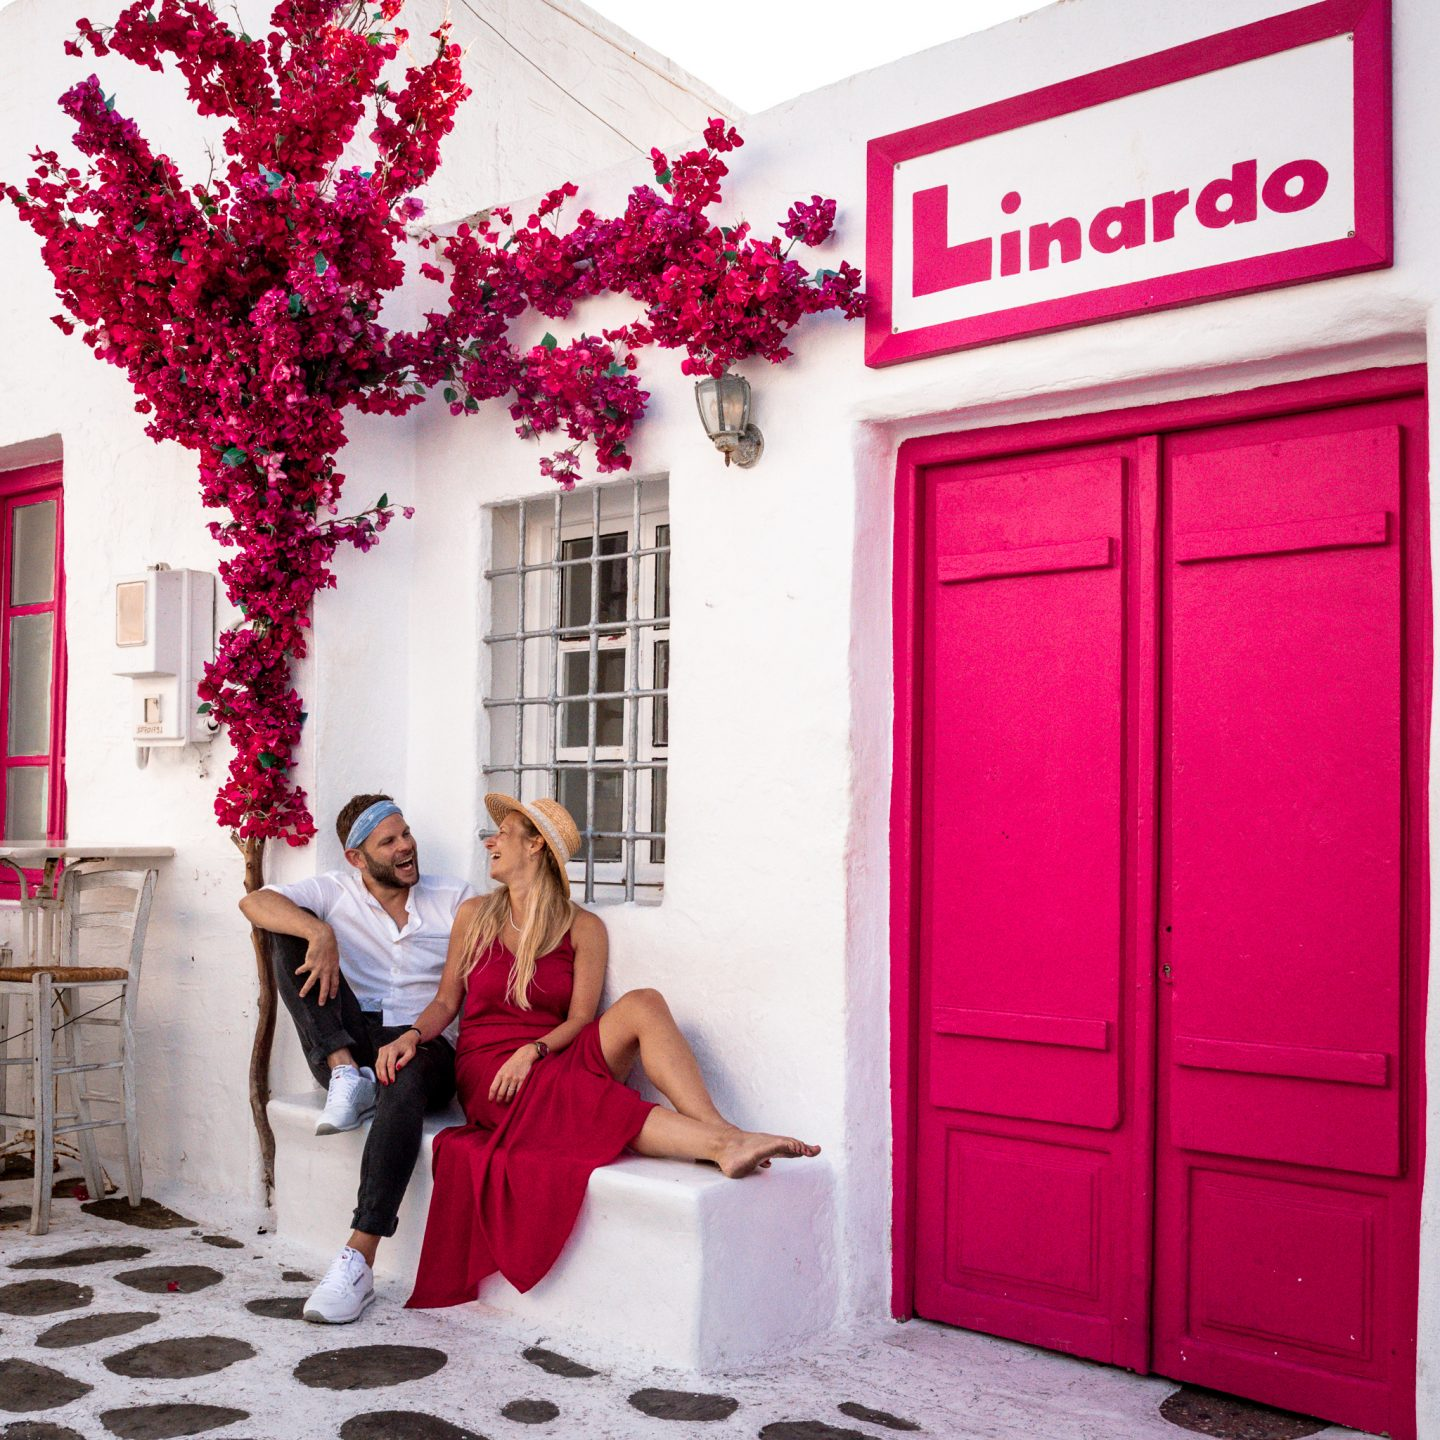 preset in usage: a colorful pink door in Greece and a couple sitting and laughing